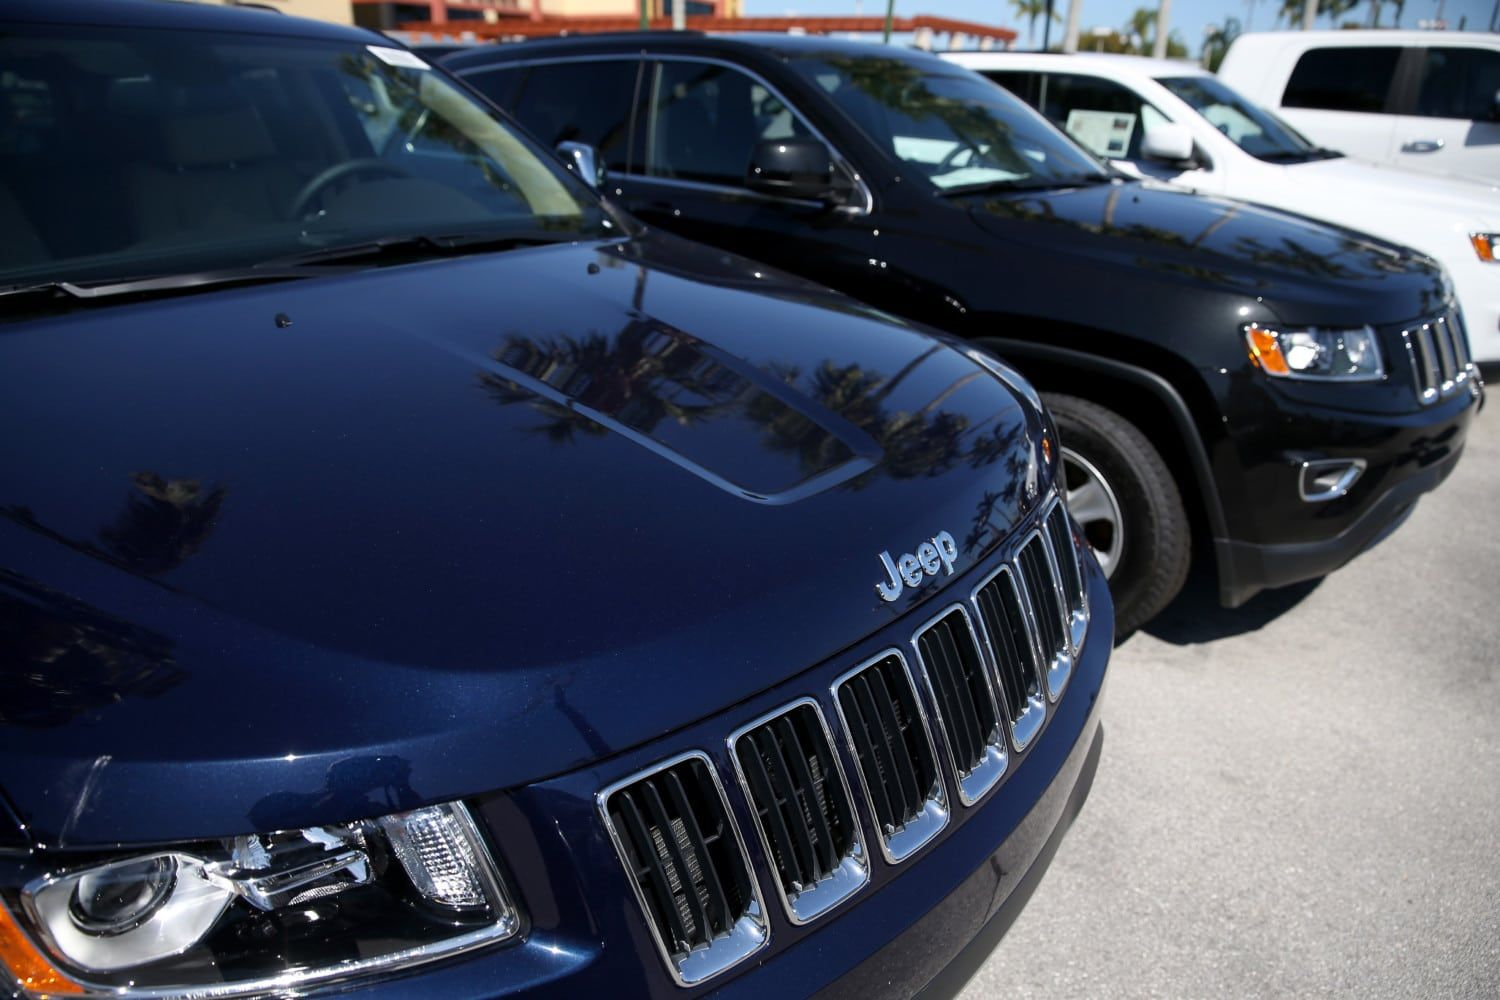 hight resolution of fiat chrysler recalls 4 8 million vehicles that could get stuck in cruise control